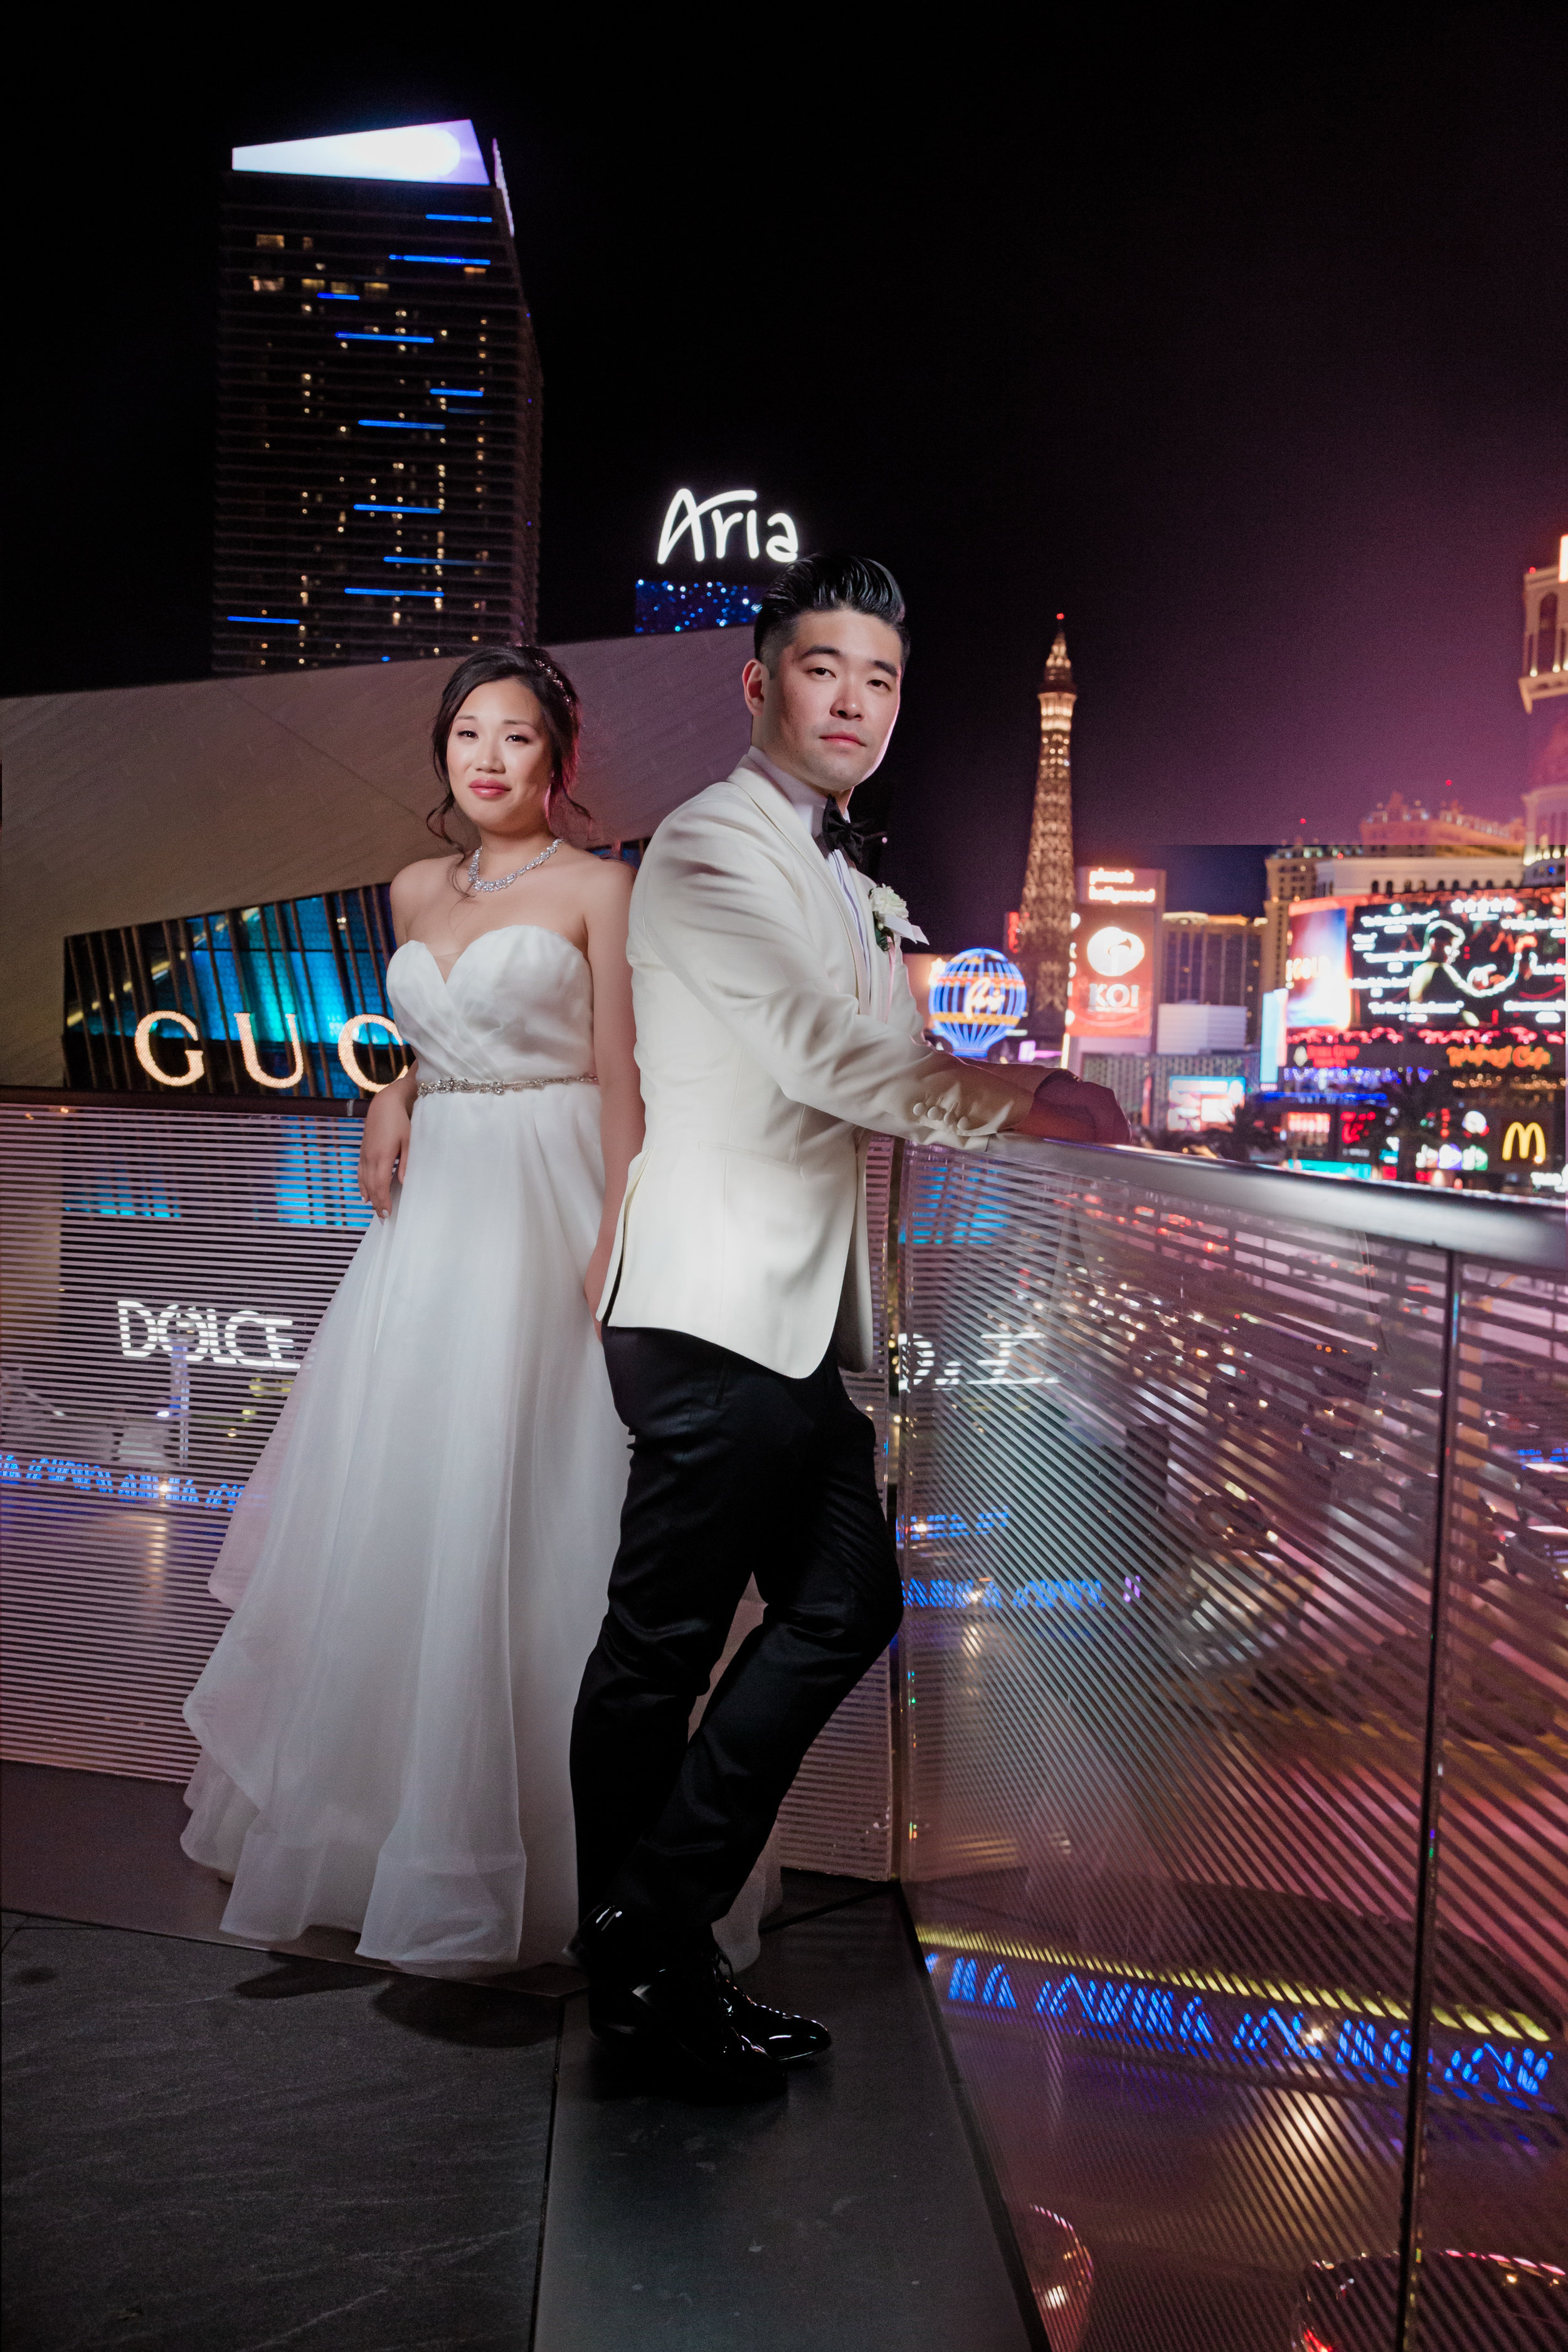 Las Vegas Wedding Photo on the Srip. Las Vegas Wedding Planner Andrea Eppolito. Photo by Adam Frazier.